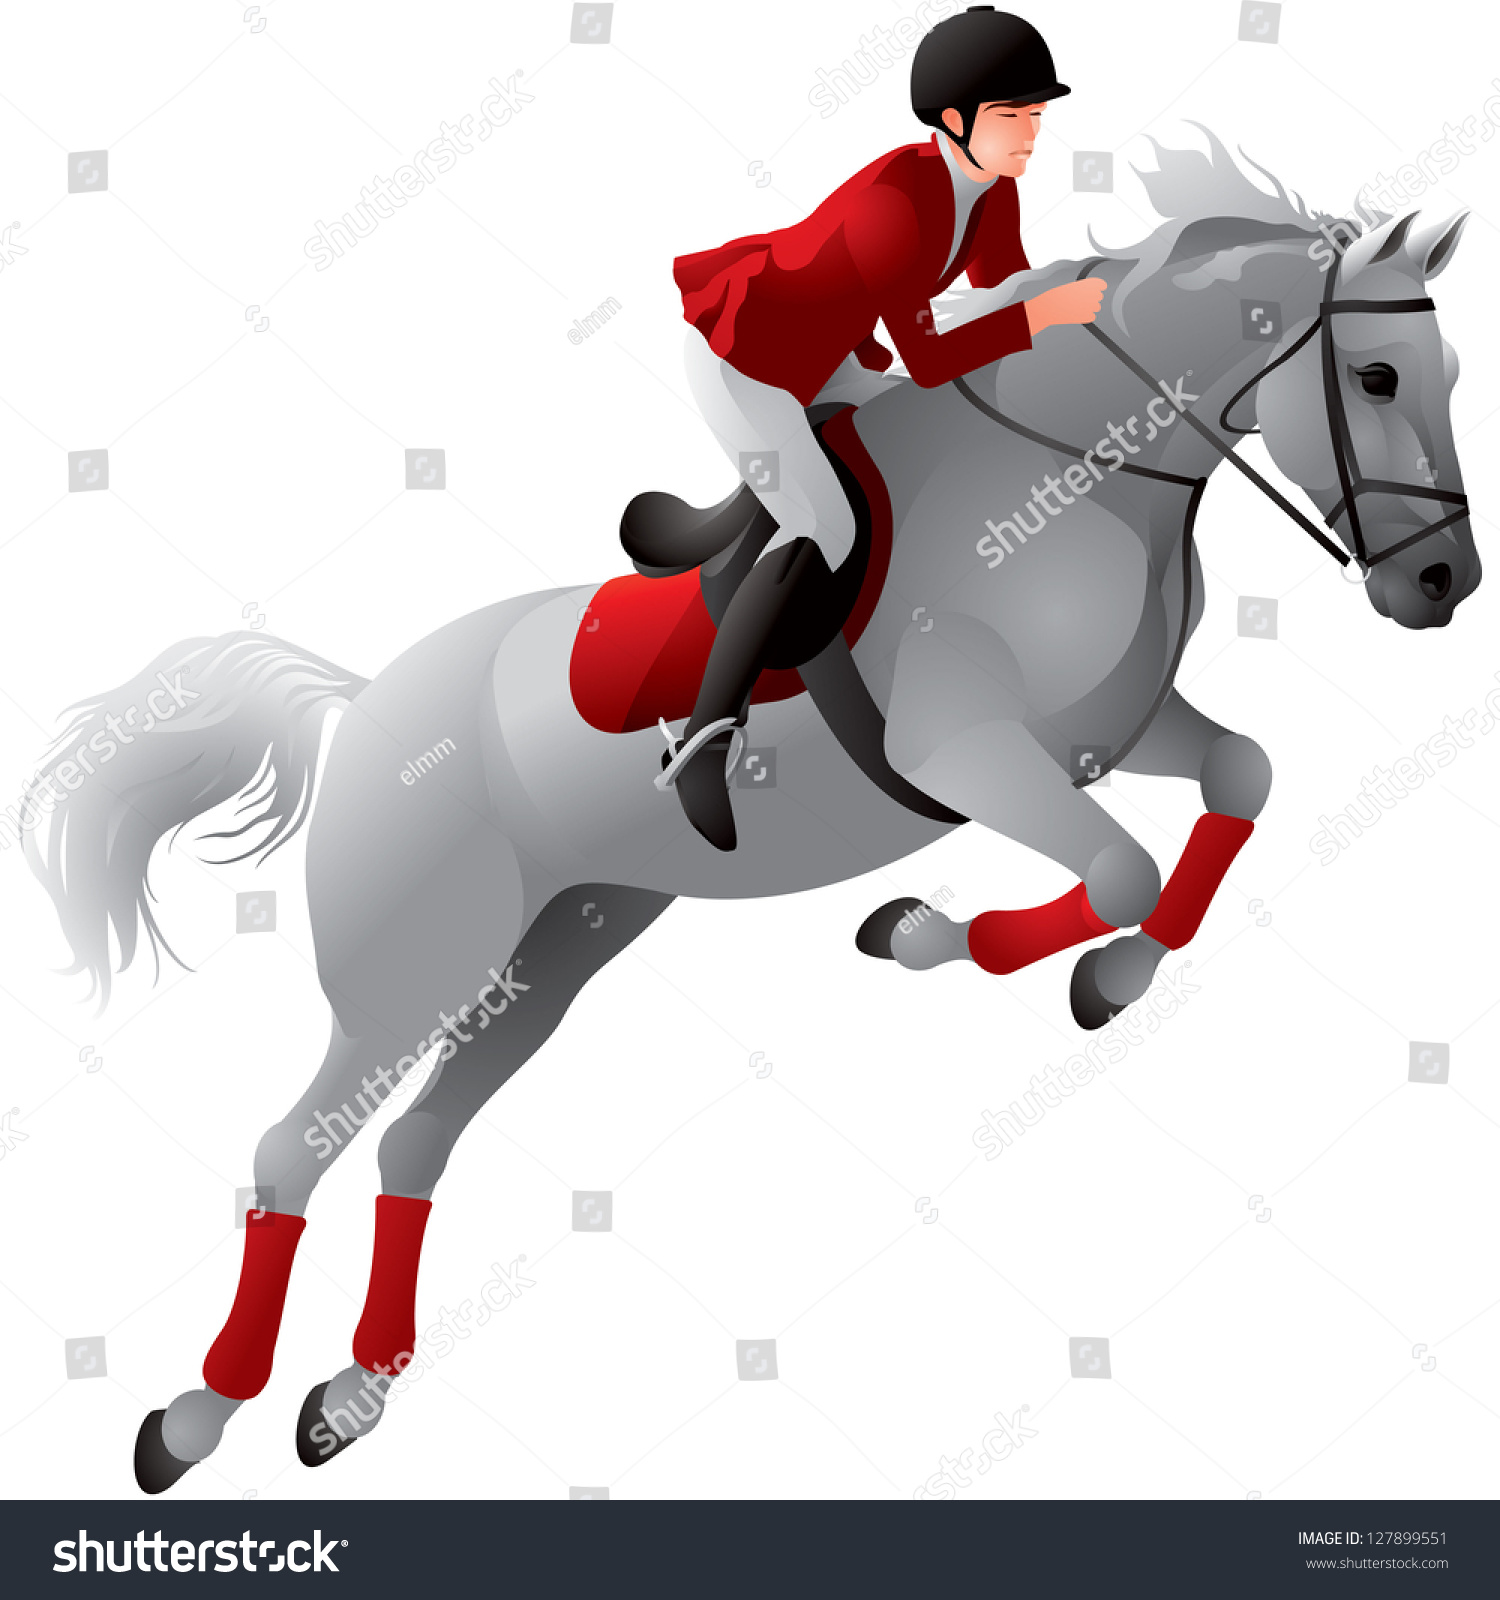 Olympic equestrian uniform